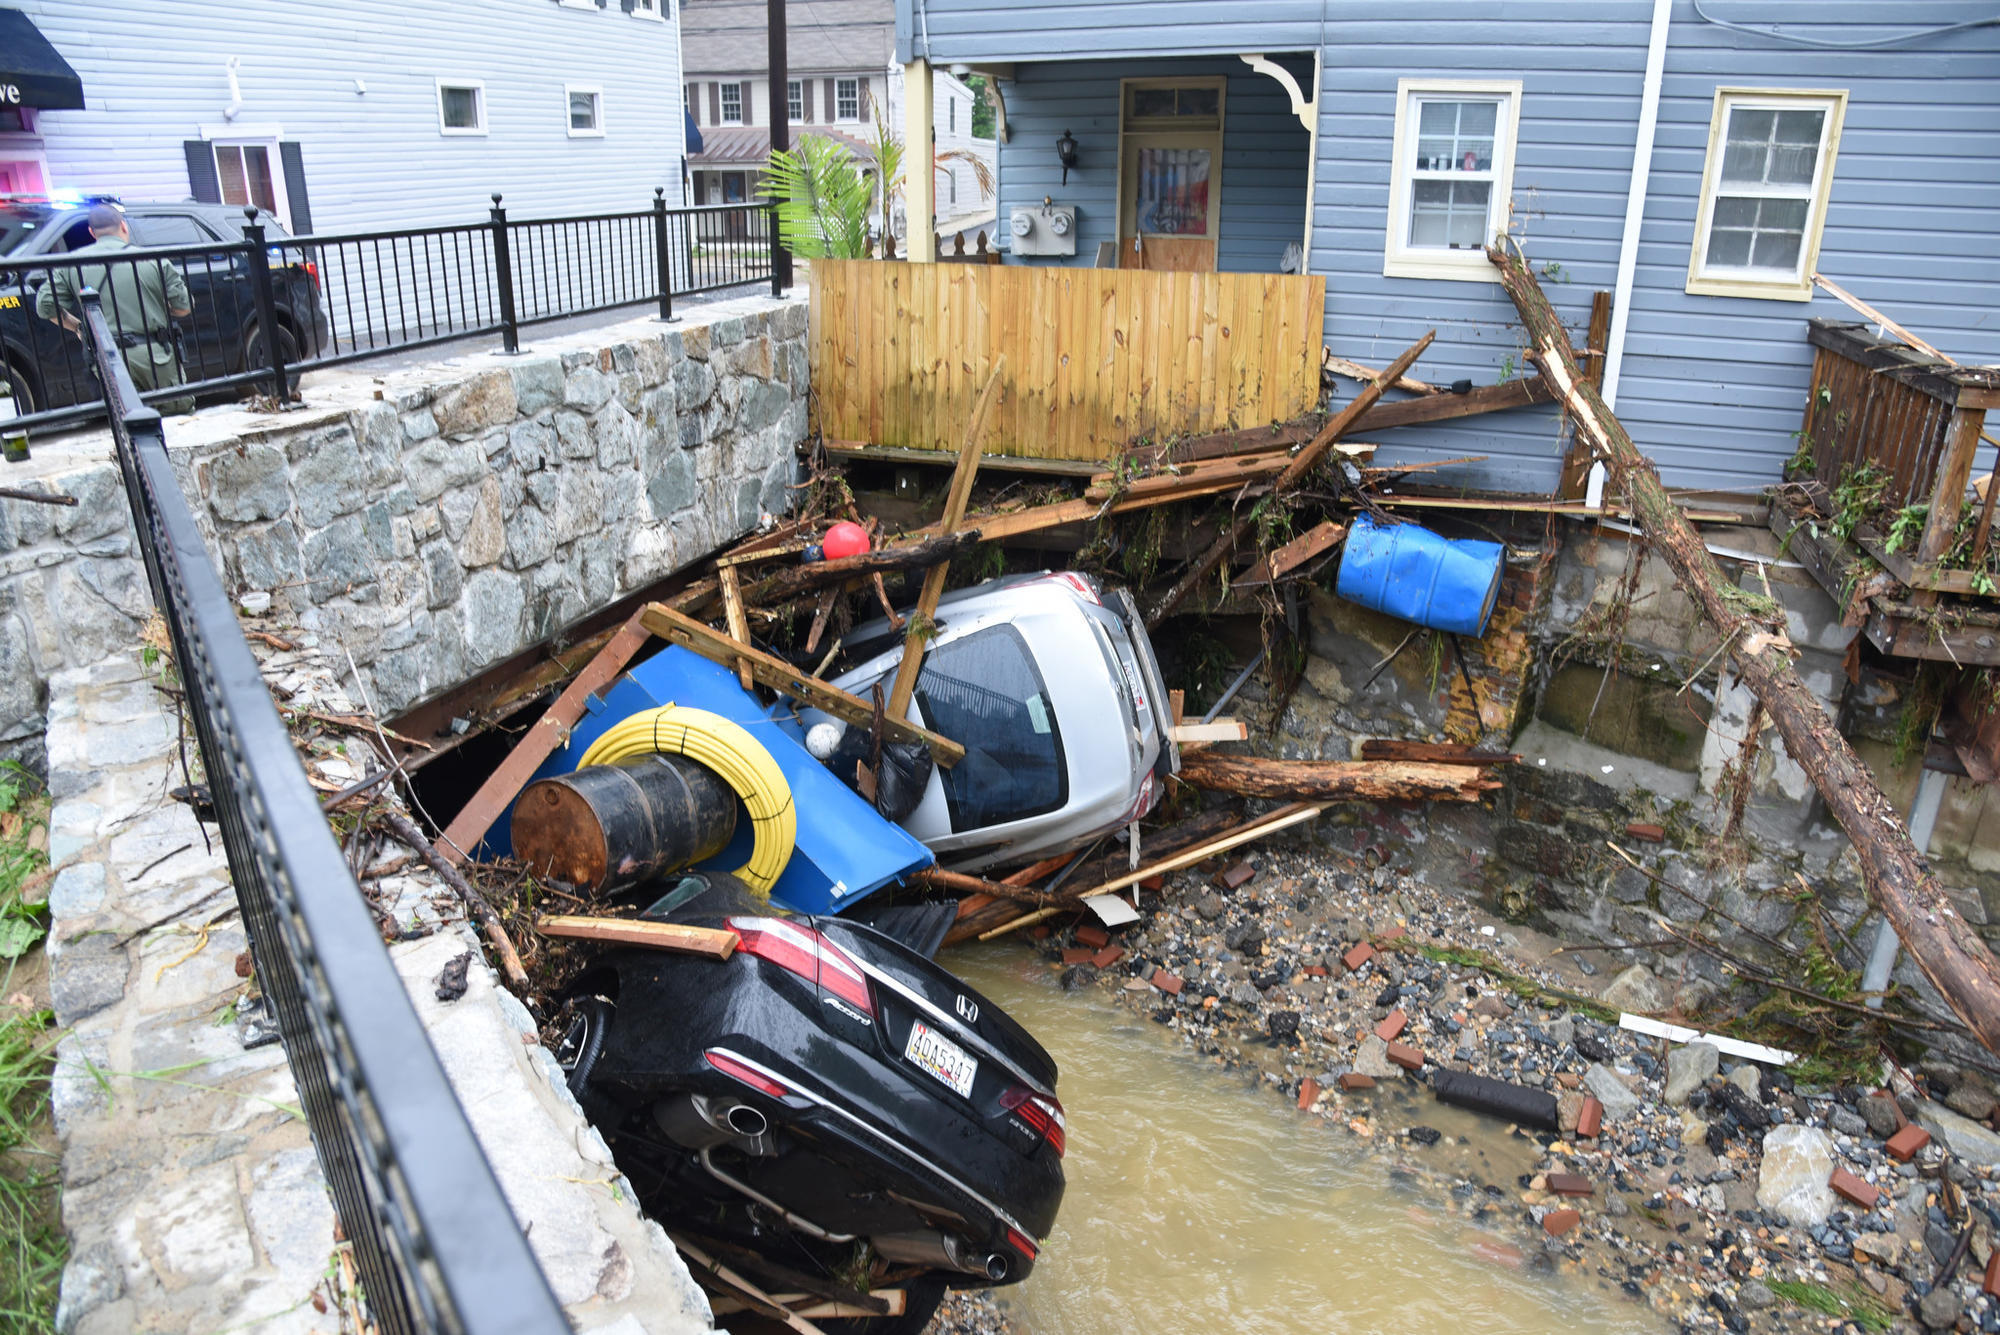 The Day After Ellicott City Flood Locals Reckon With Damage